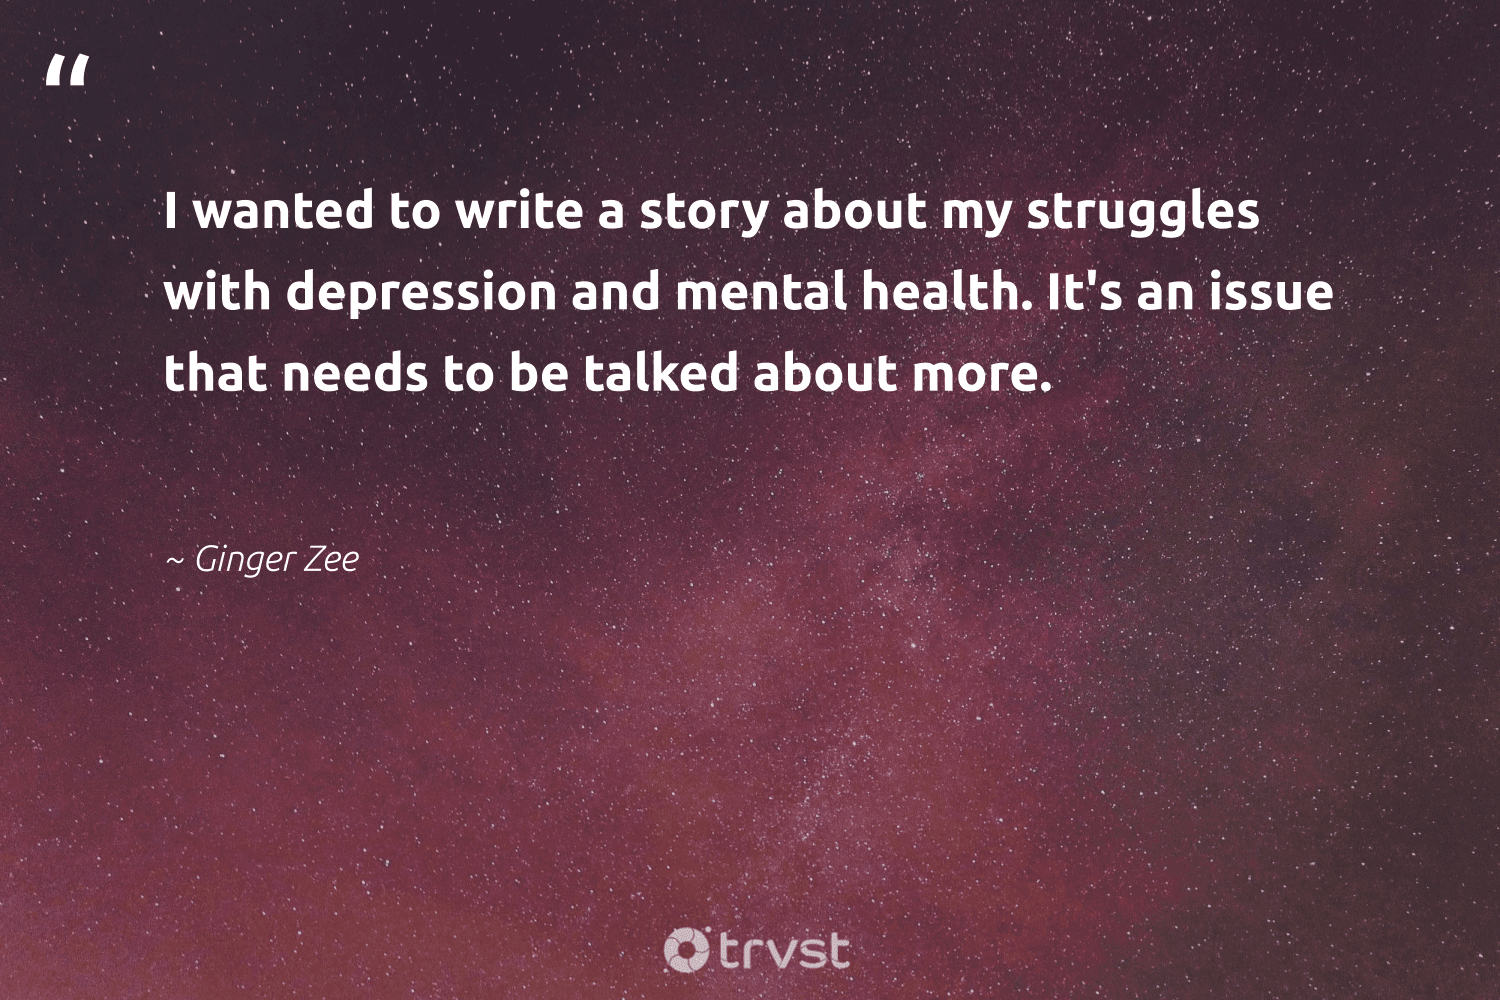 """""""I wanted to write a story about my struggles with depression and mental health. It's an issue that needs to be talked about more.""""  - Ginger Zee #trvst #quotes #mentalhealth #health #depression #mentalhealthawareness #mentalhealthmatters #nevergiveup #begreat #socialchange #anxiety #stampoutthestigma"""